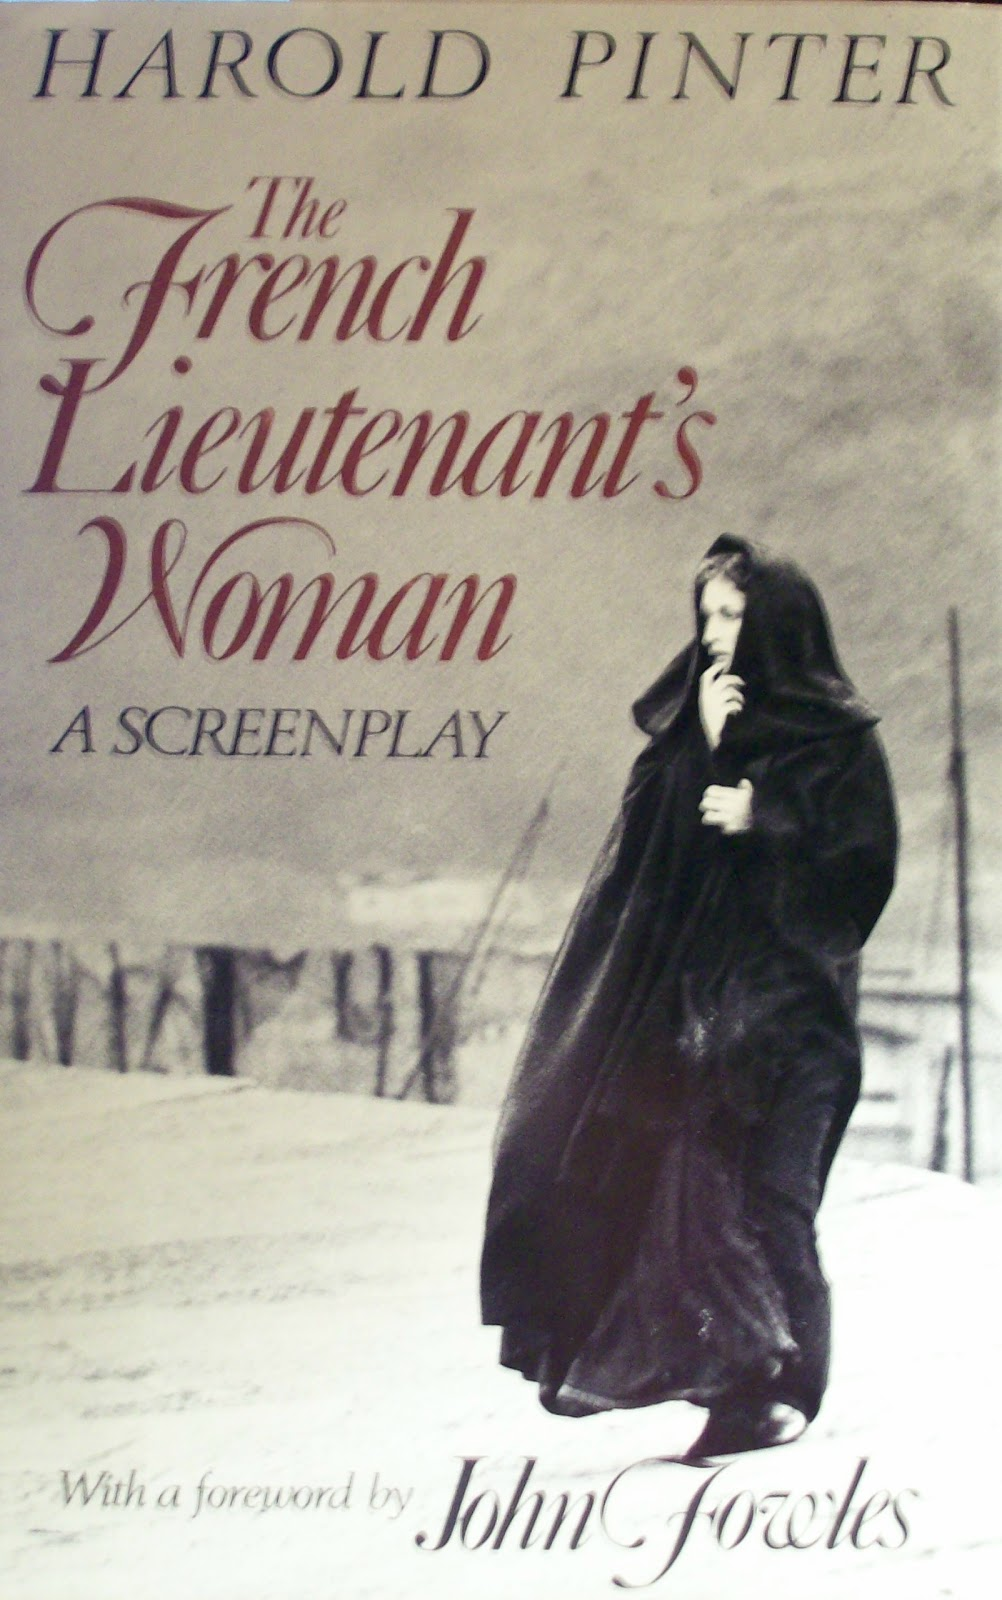 a literary analysis of the frenck lieutenants woman by john fowles By john fowles the conclusions of the french lieutanant's woman and the author's clear preference the french lieutenant's woman and the possibility of feminism the issue of desire in literature.